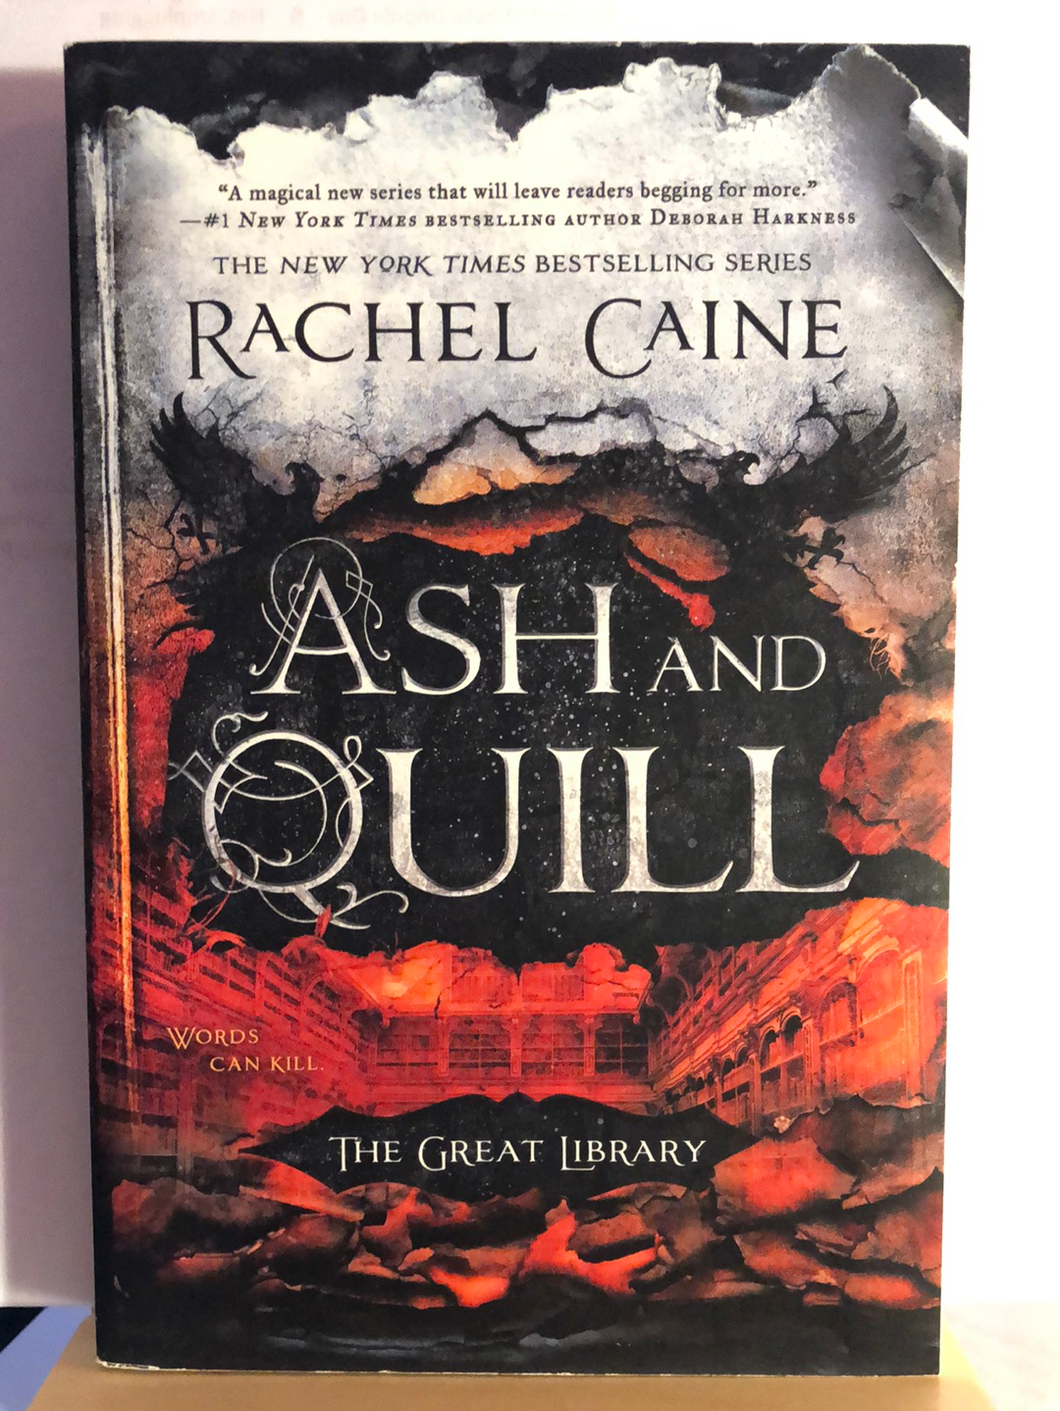 Ash and Quill   by Rachel Caine   (The Great Library #3)    Paperback